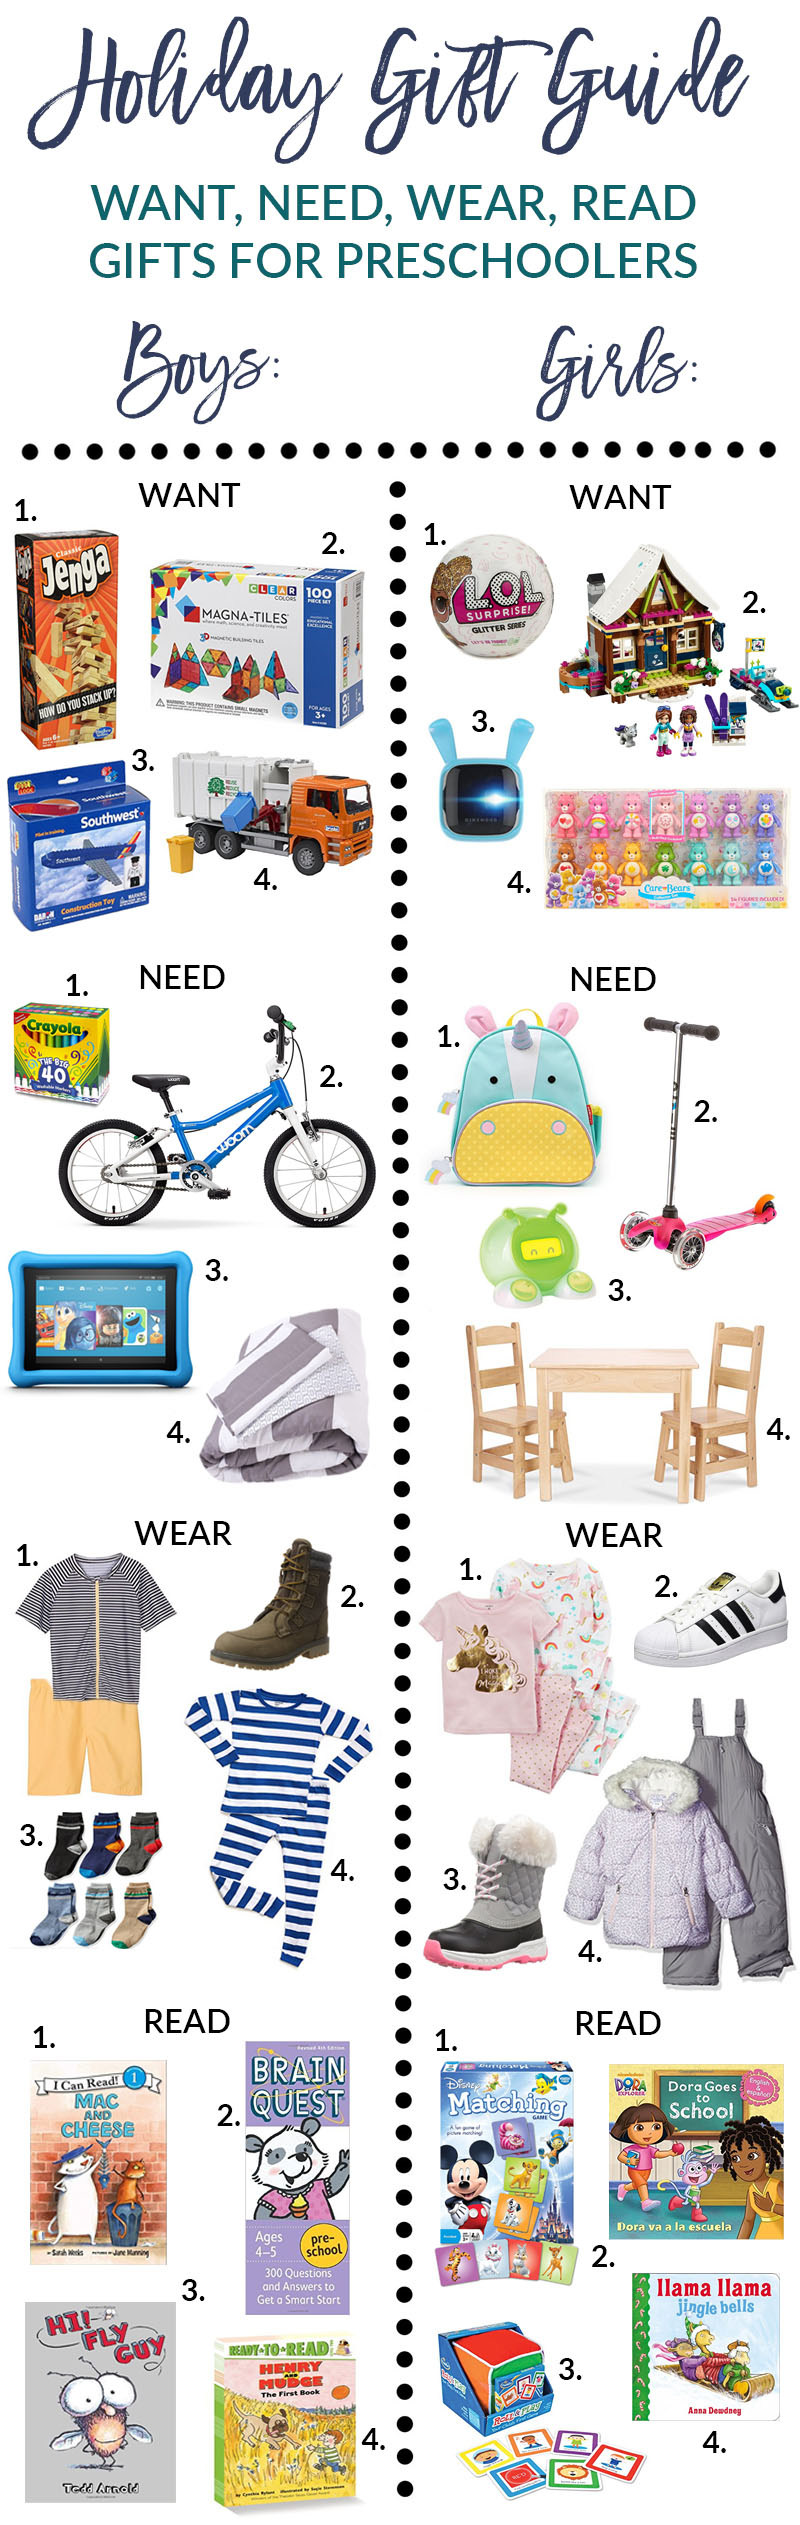 Holiday Gift Guide: Want, Need, Wear, Read Gifts For Pre-Schoolers by Utah lifestyle blogger Sandy A La Mode